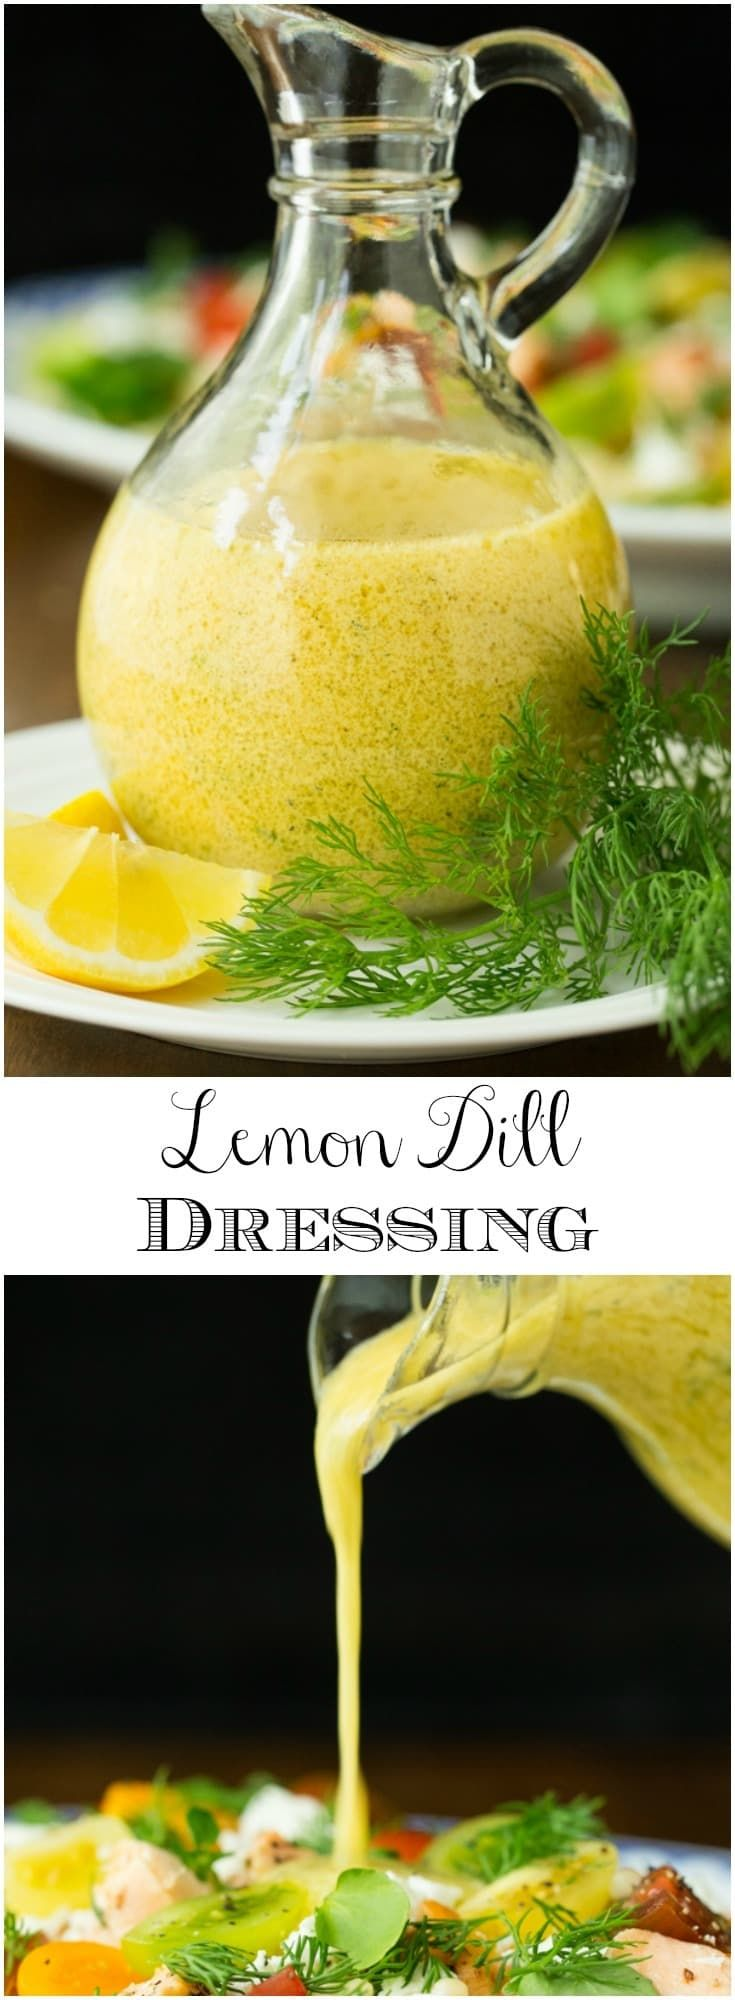 With bright, fresh flavor, this easy Lemon Dill Dressing is perfect with greens and veggies as well as chicken, fish and shrimp!  via @cafesucrefarine